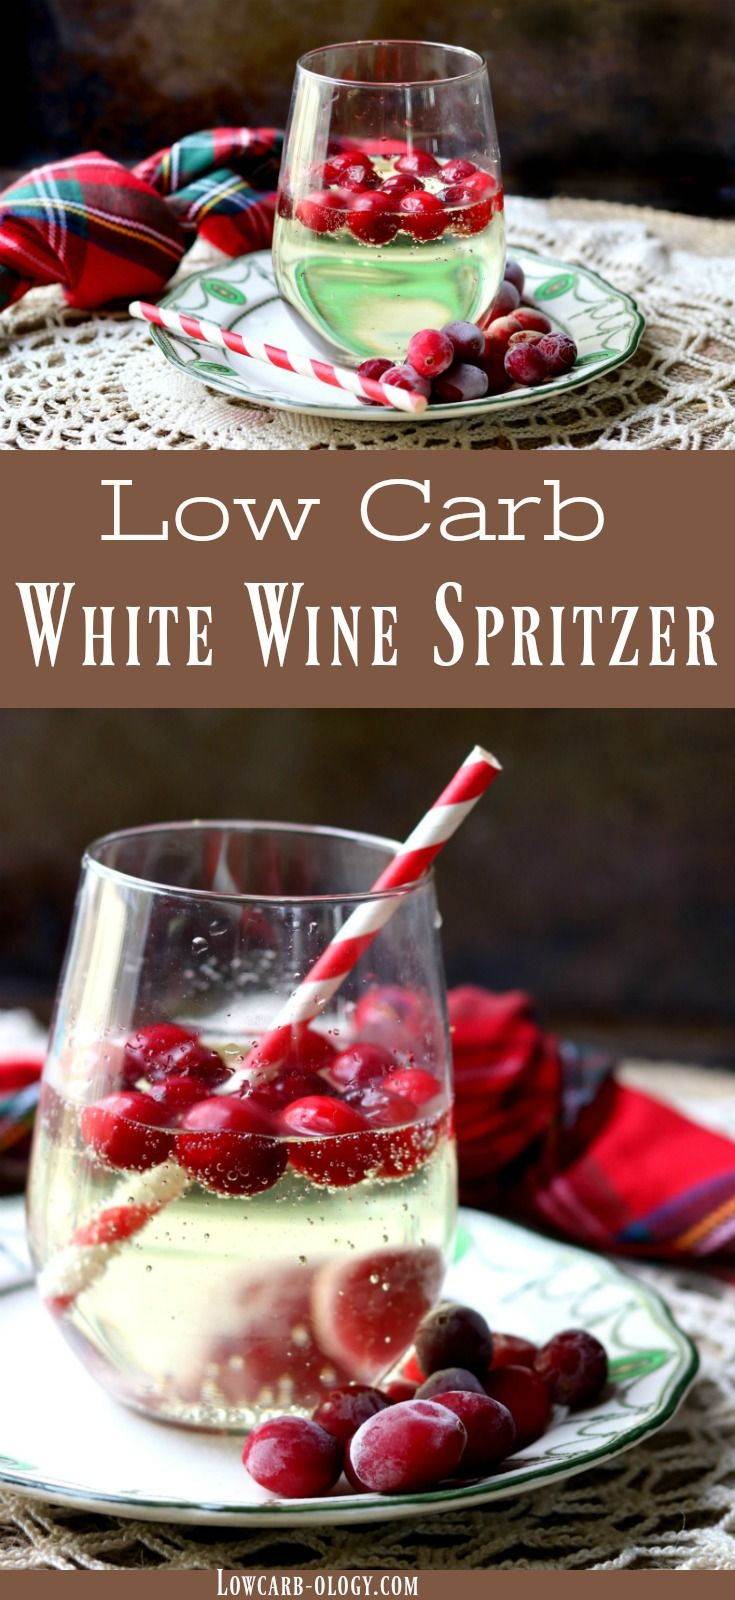 Low Carb white wine spritzer with pineapple vodka is low carb - perfect for holiday celebrations. Light and sparkly, this refreshing cocktail has just 2 carbs for 8 ounces. From Lowcarb-ology.com #lowcarb #cocktails #wine #holidaycocktails